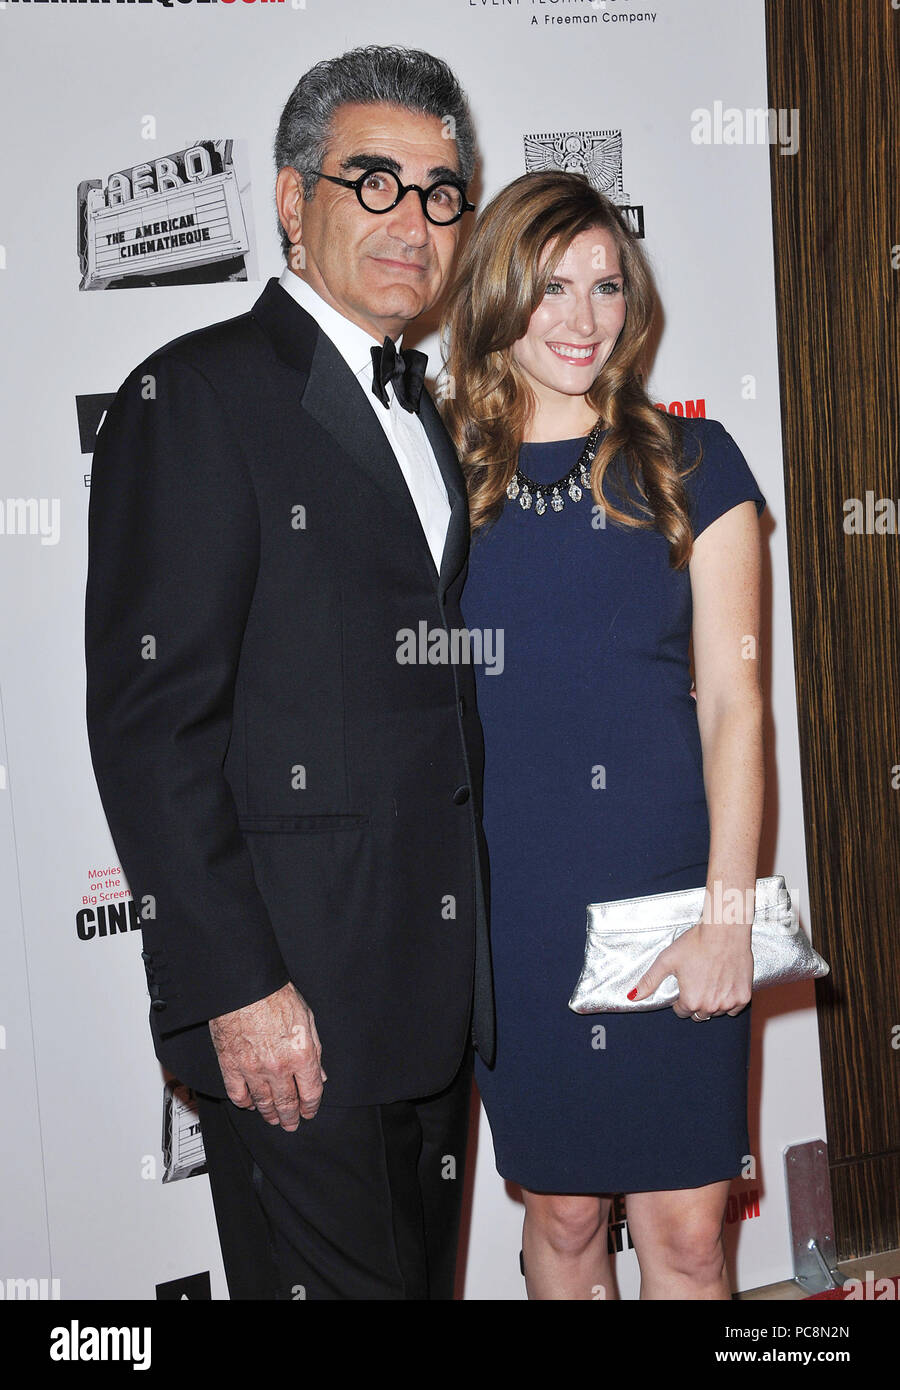 Eugene Levy and Daughter Sarah at American Cimenatheque Honoring Ben